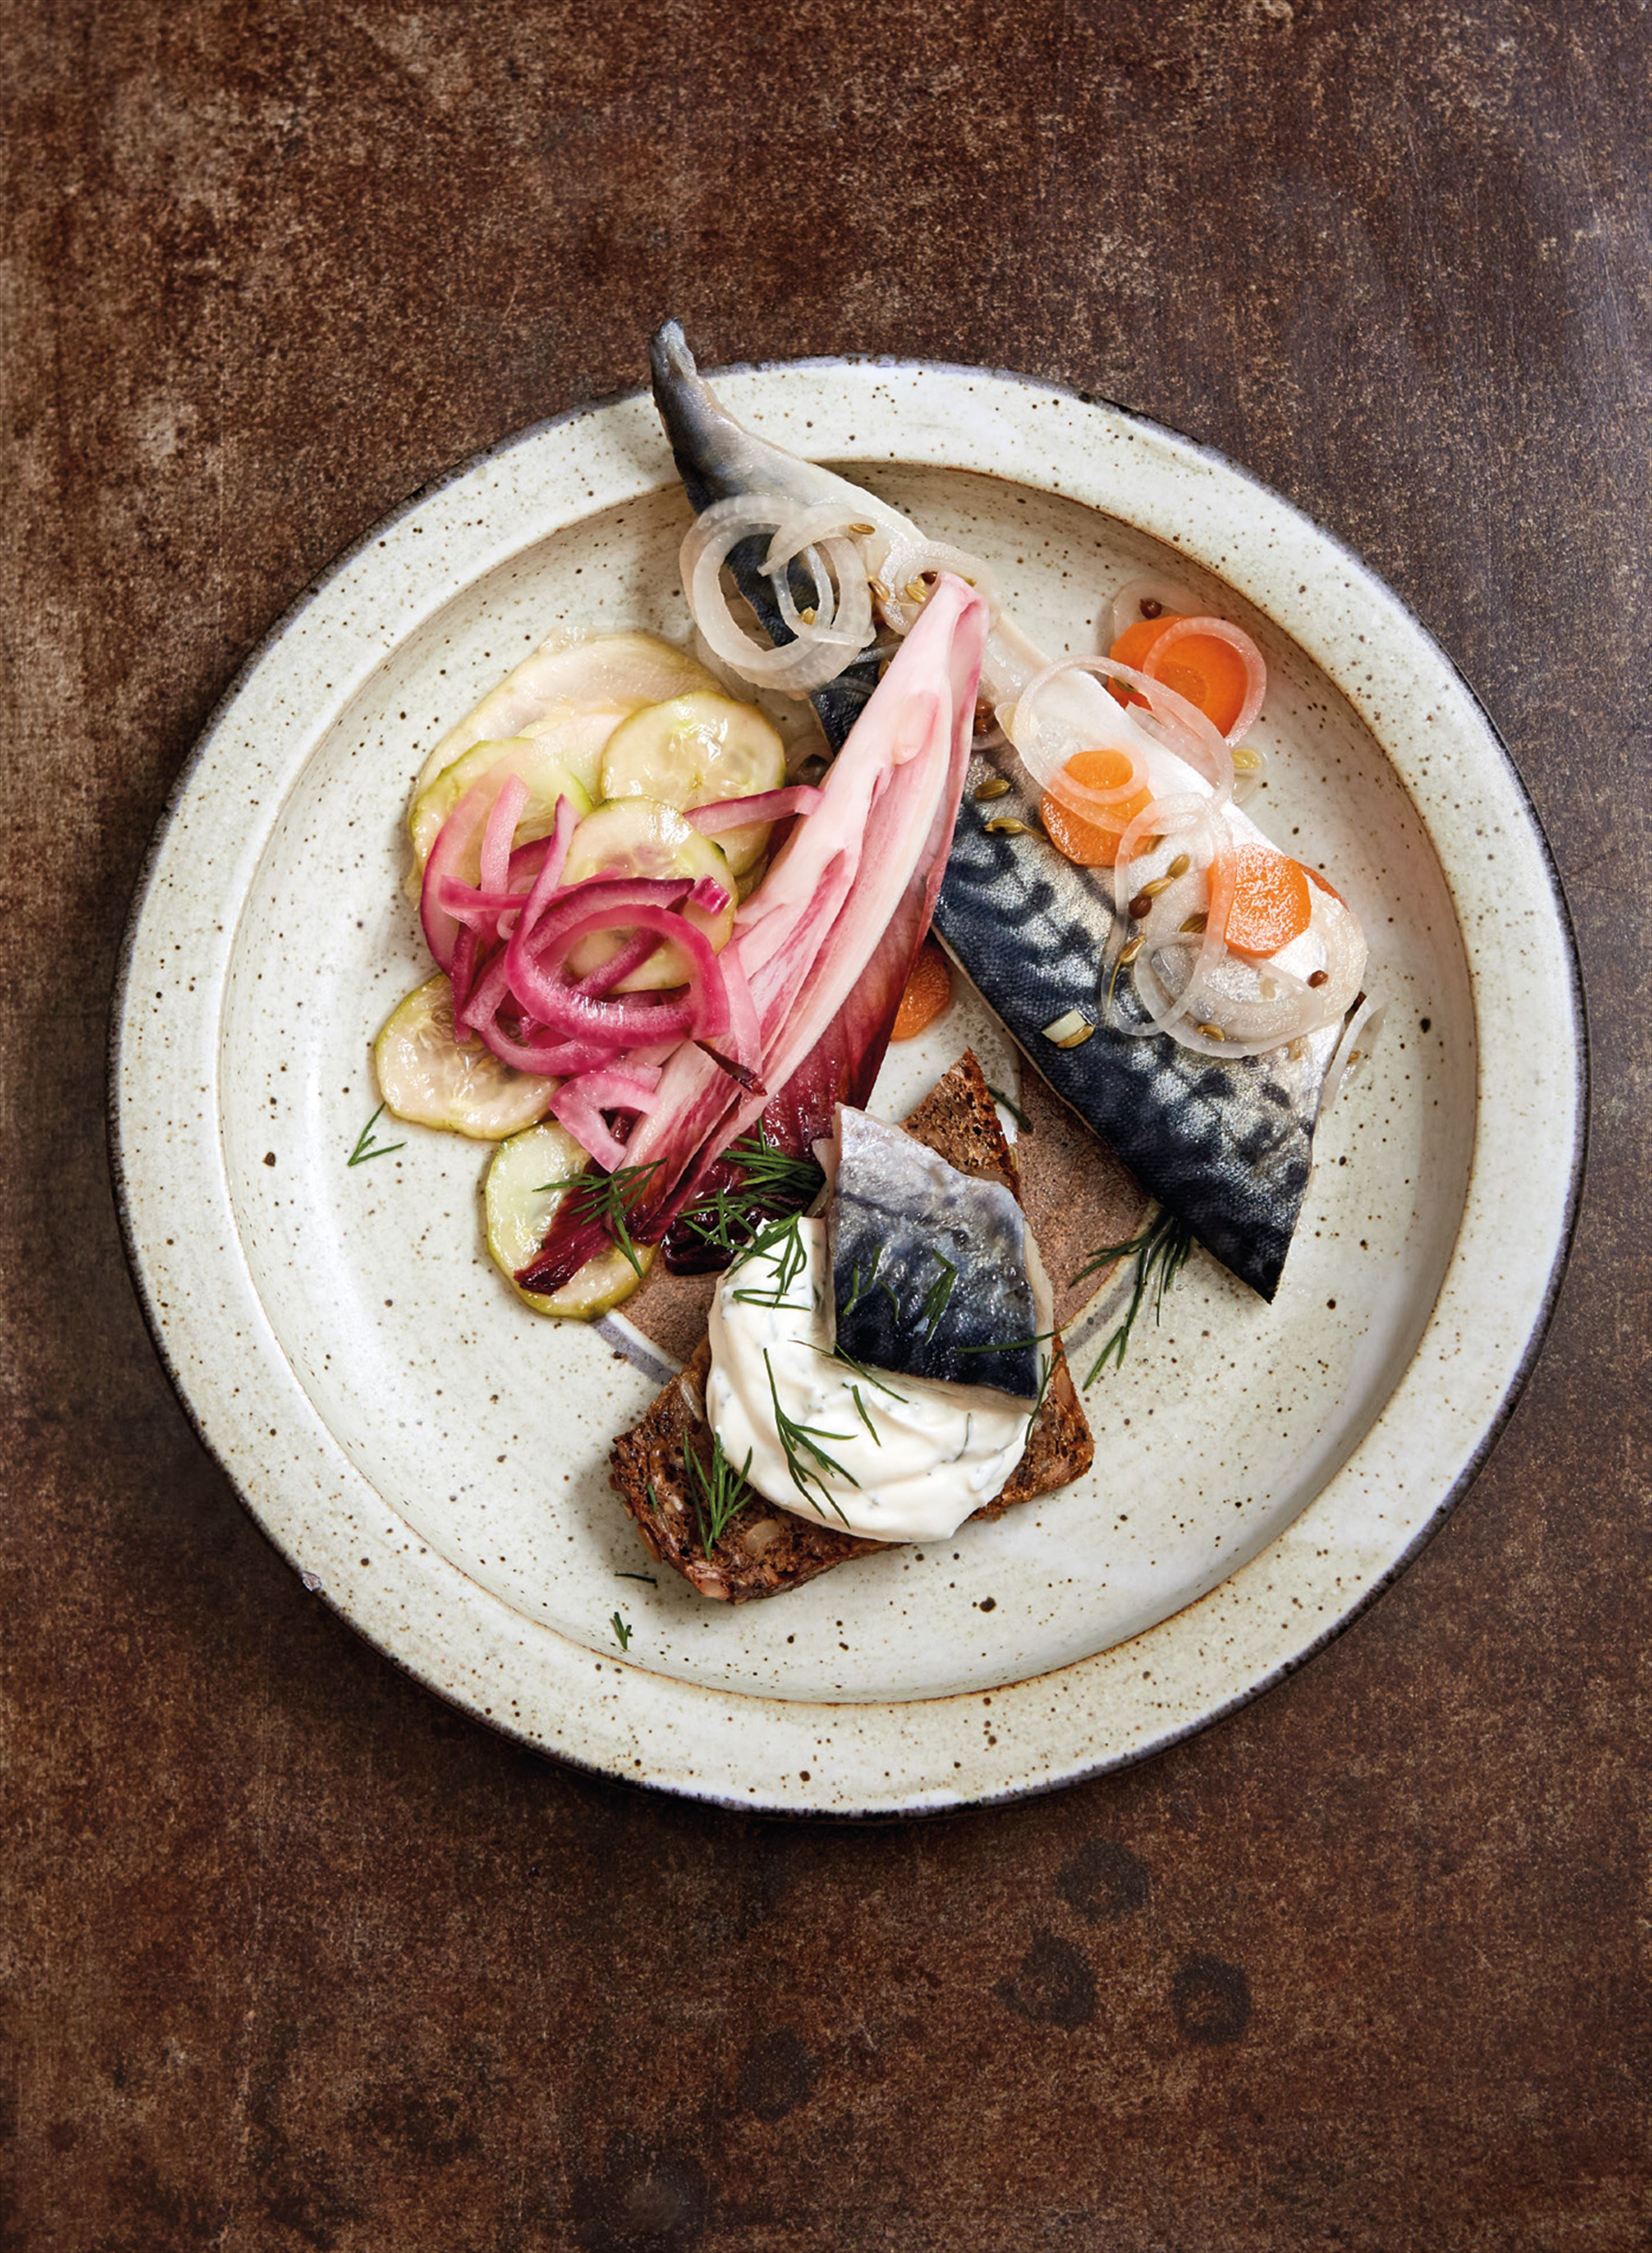 Quick soused mackerel with bread-and-butter pickles